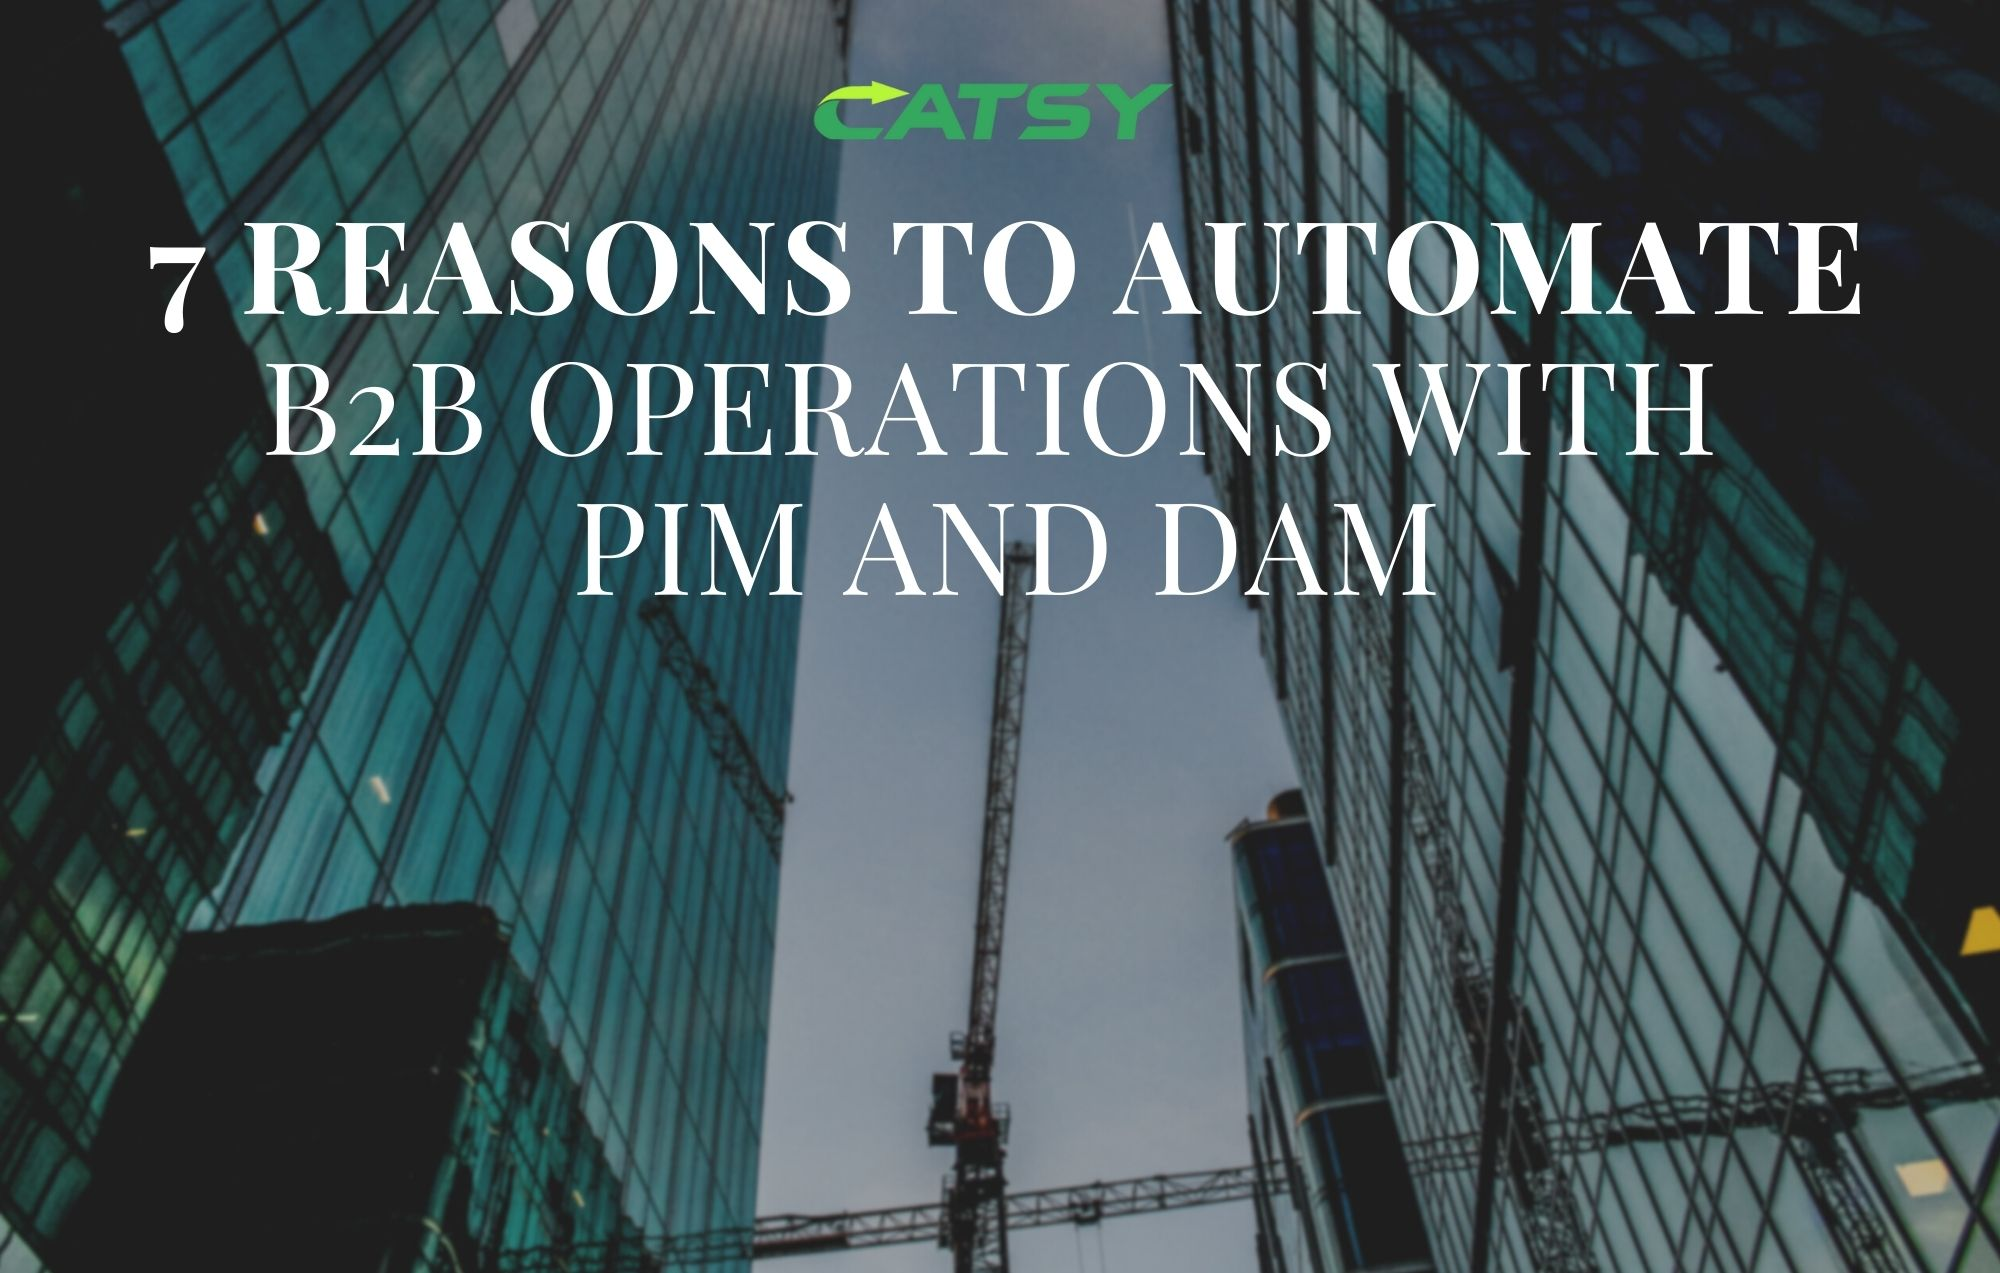 7 Reasons to Automate your B2B eCommerce Operations with PIM and DAM.